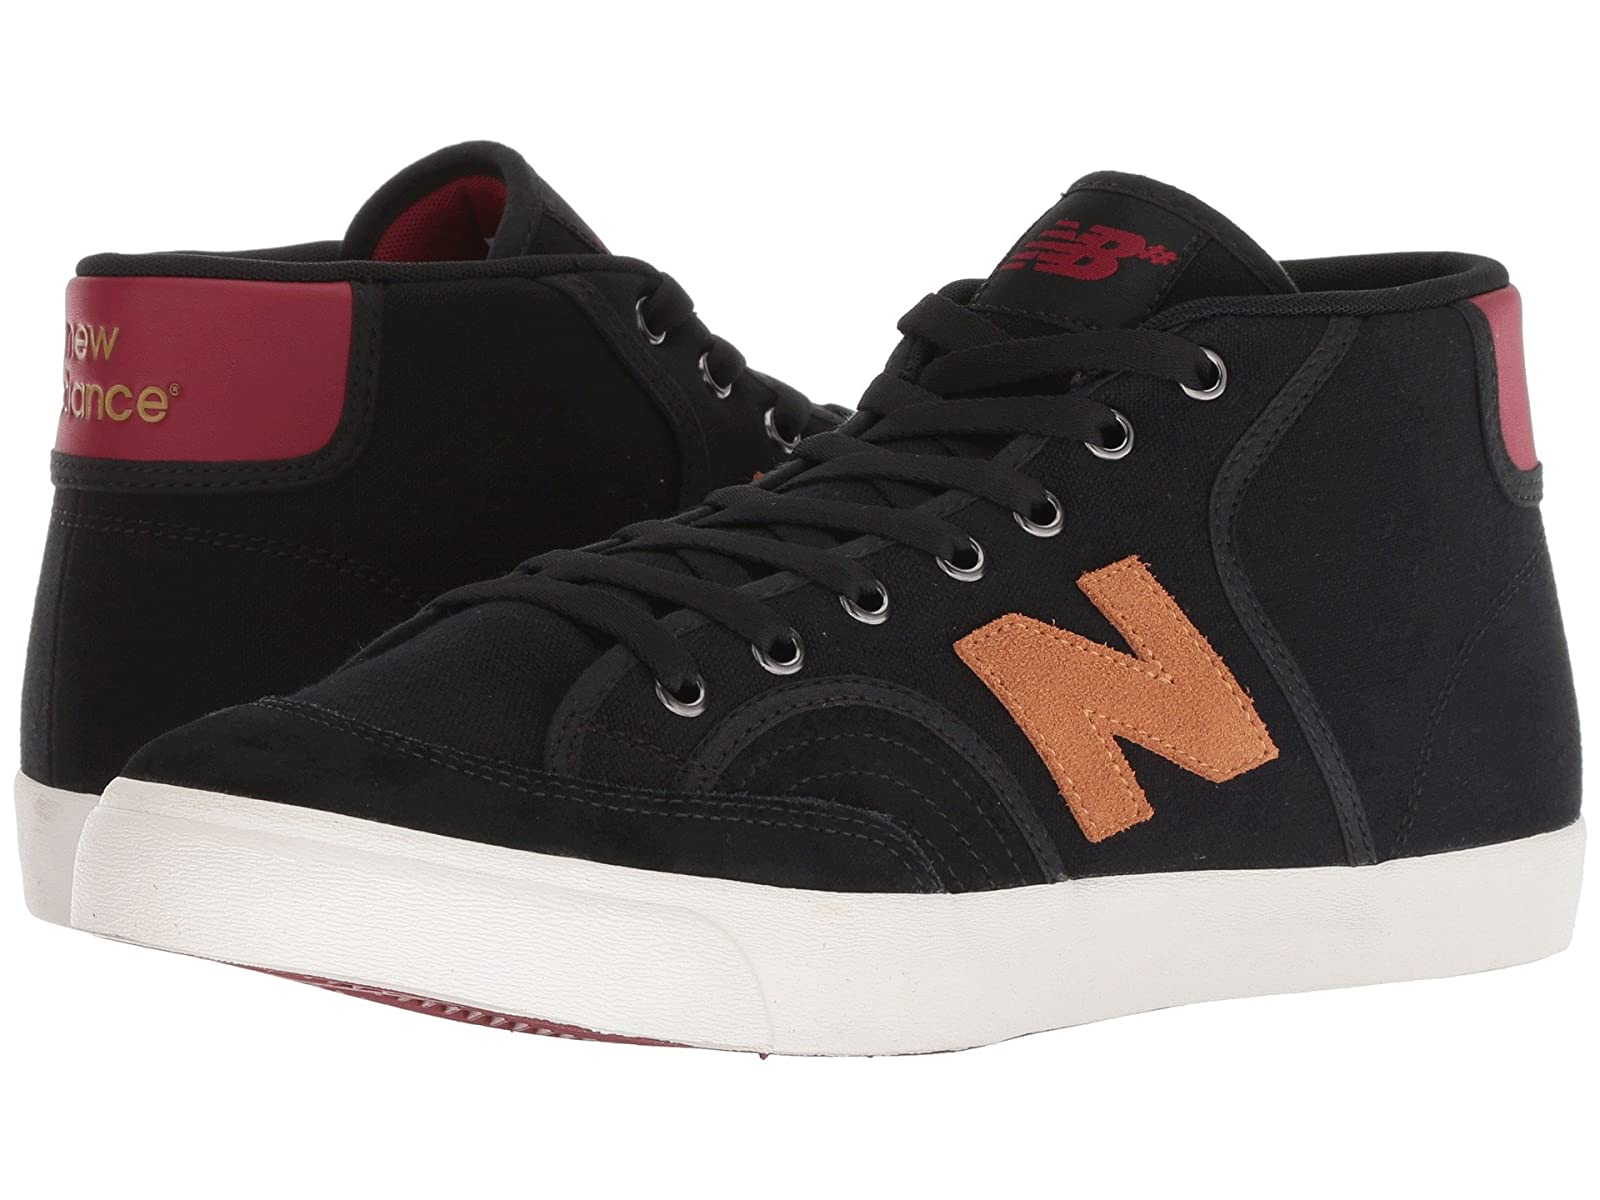 New Balance Numeric NM213Atmospheric grades have affordable shoes